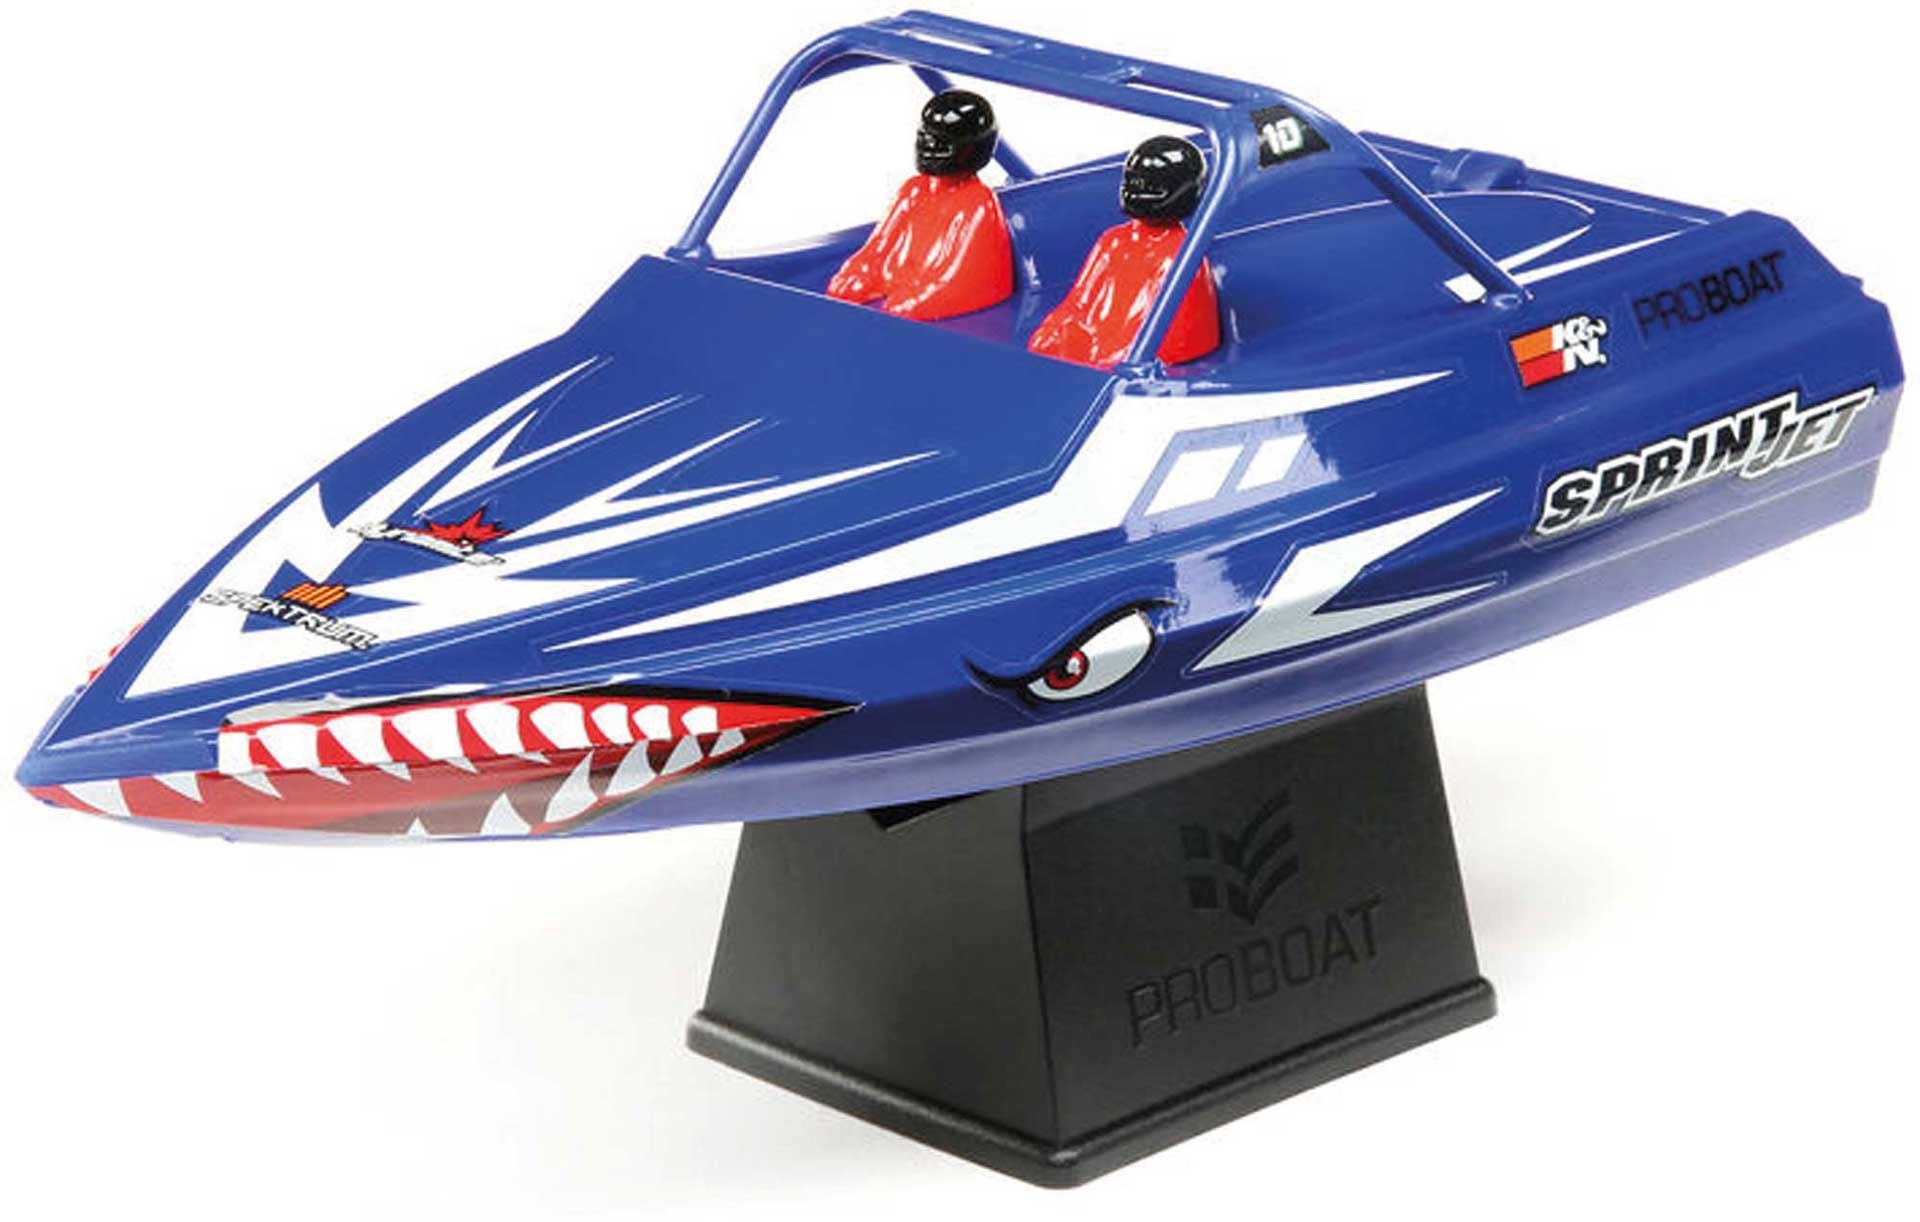 PROBOAT SPRINT JET 9-INCH BOAT RTR BLUE